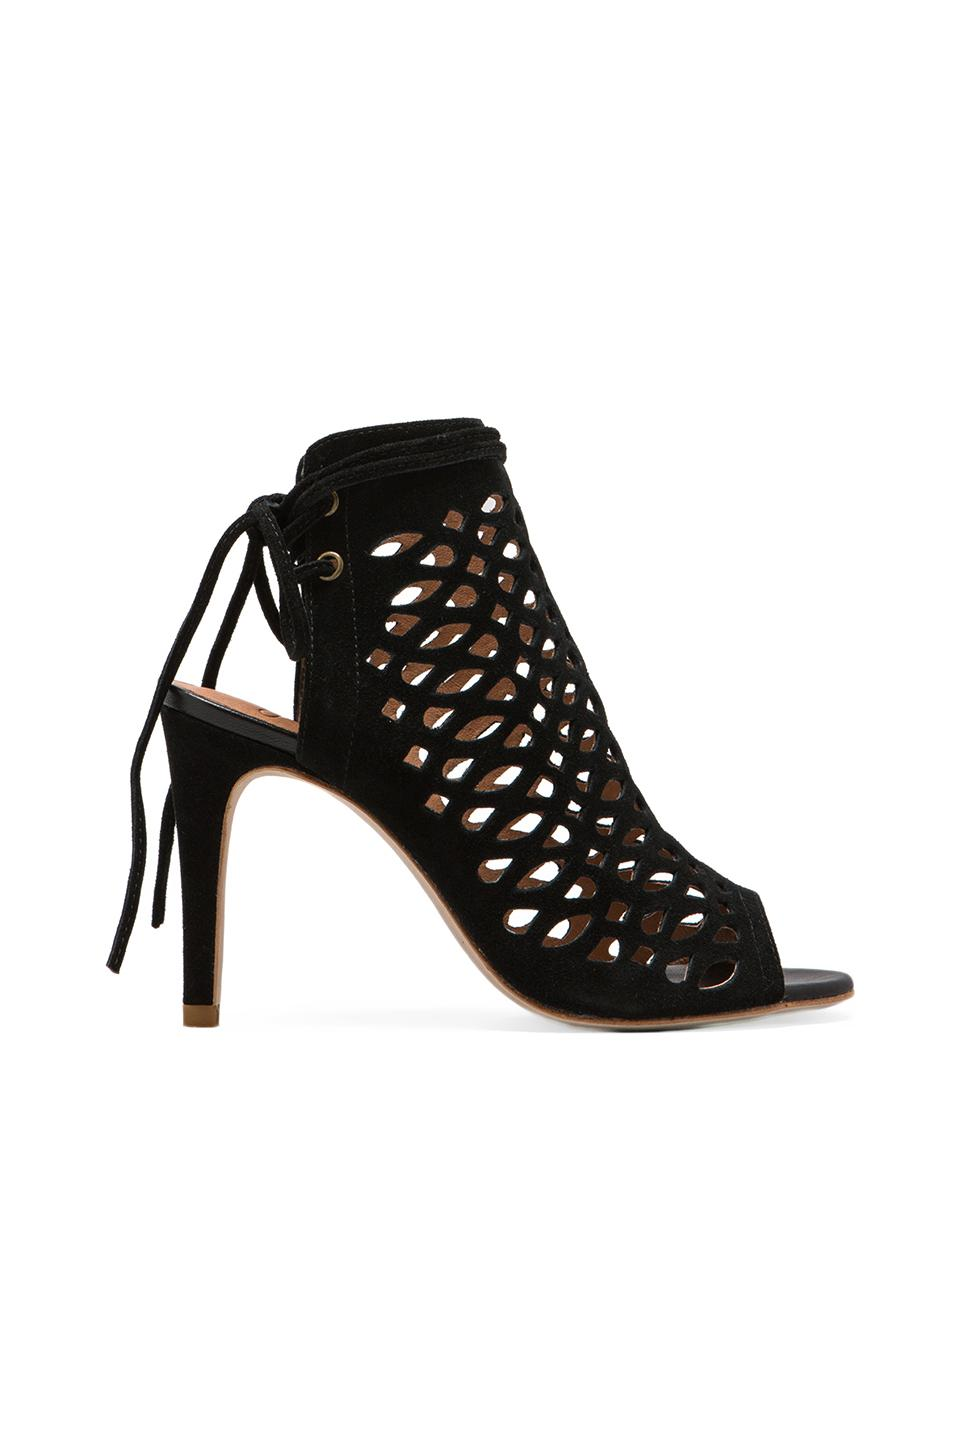 Joie Clayton Pump in Black